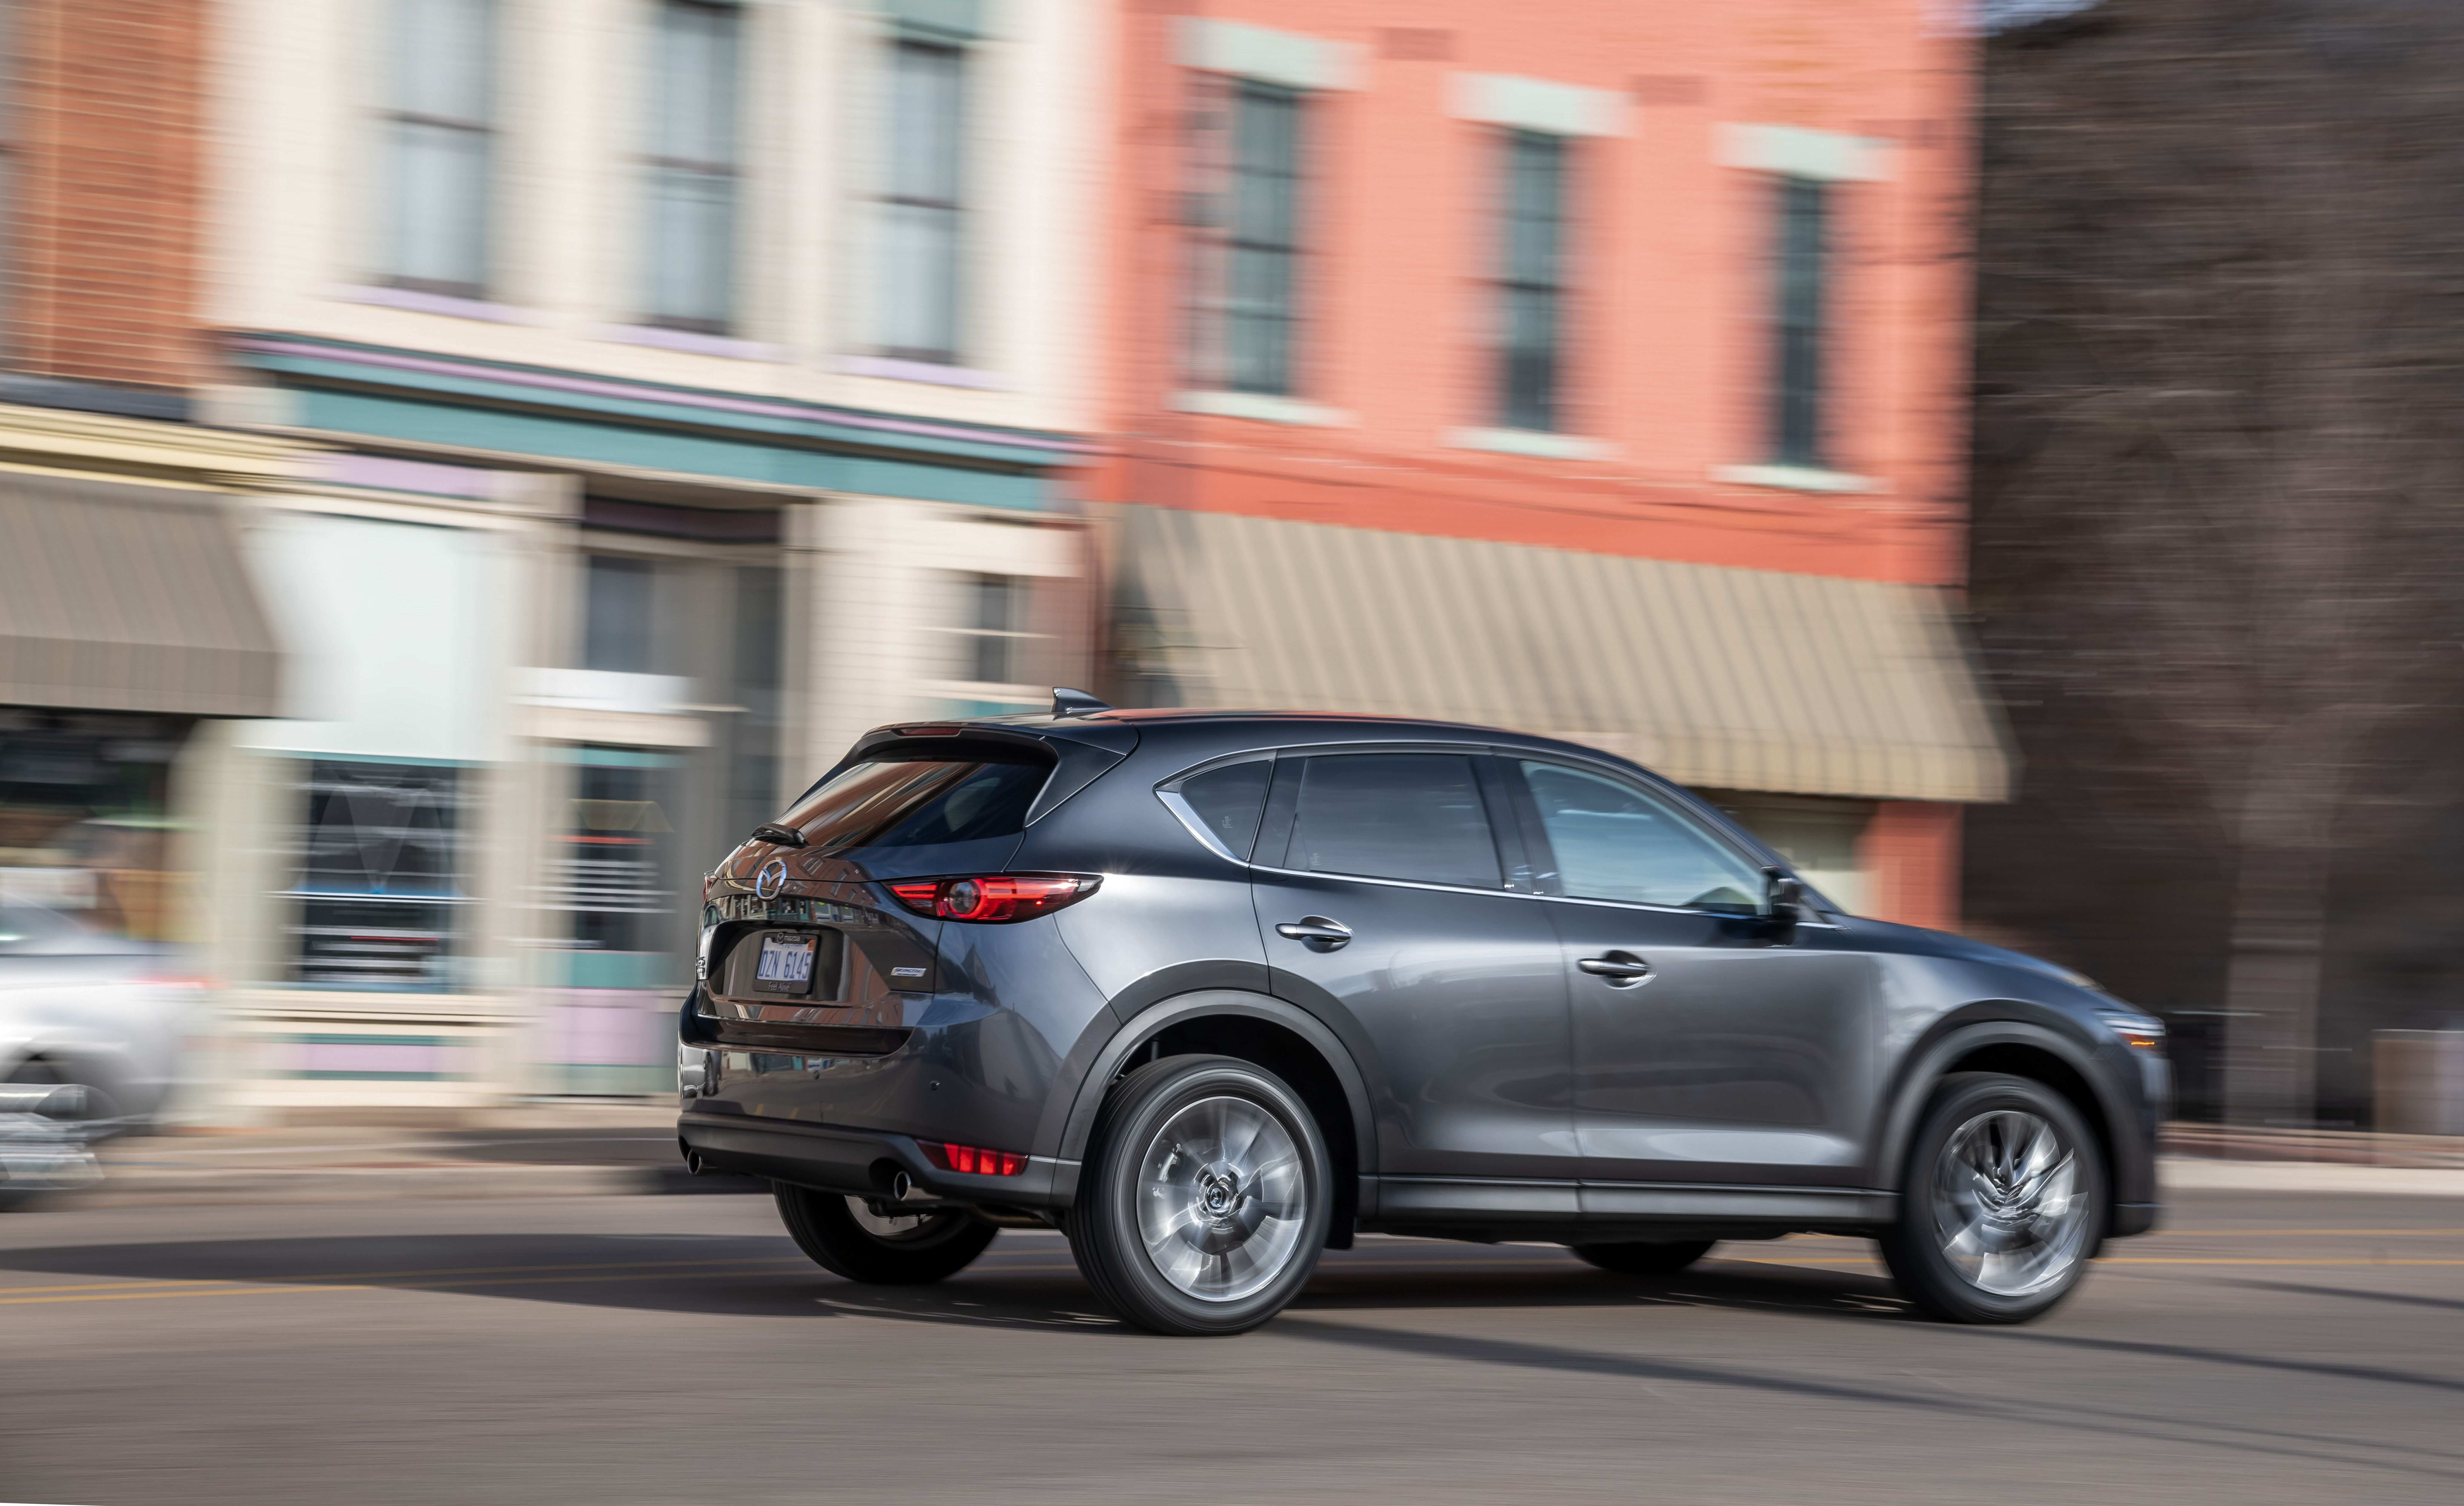 65 The New Mazda Jeep 2019 New Review Picture by New Mazda Jeep 2019 New Review